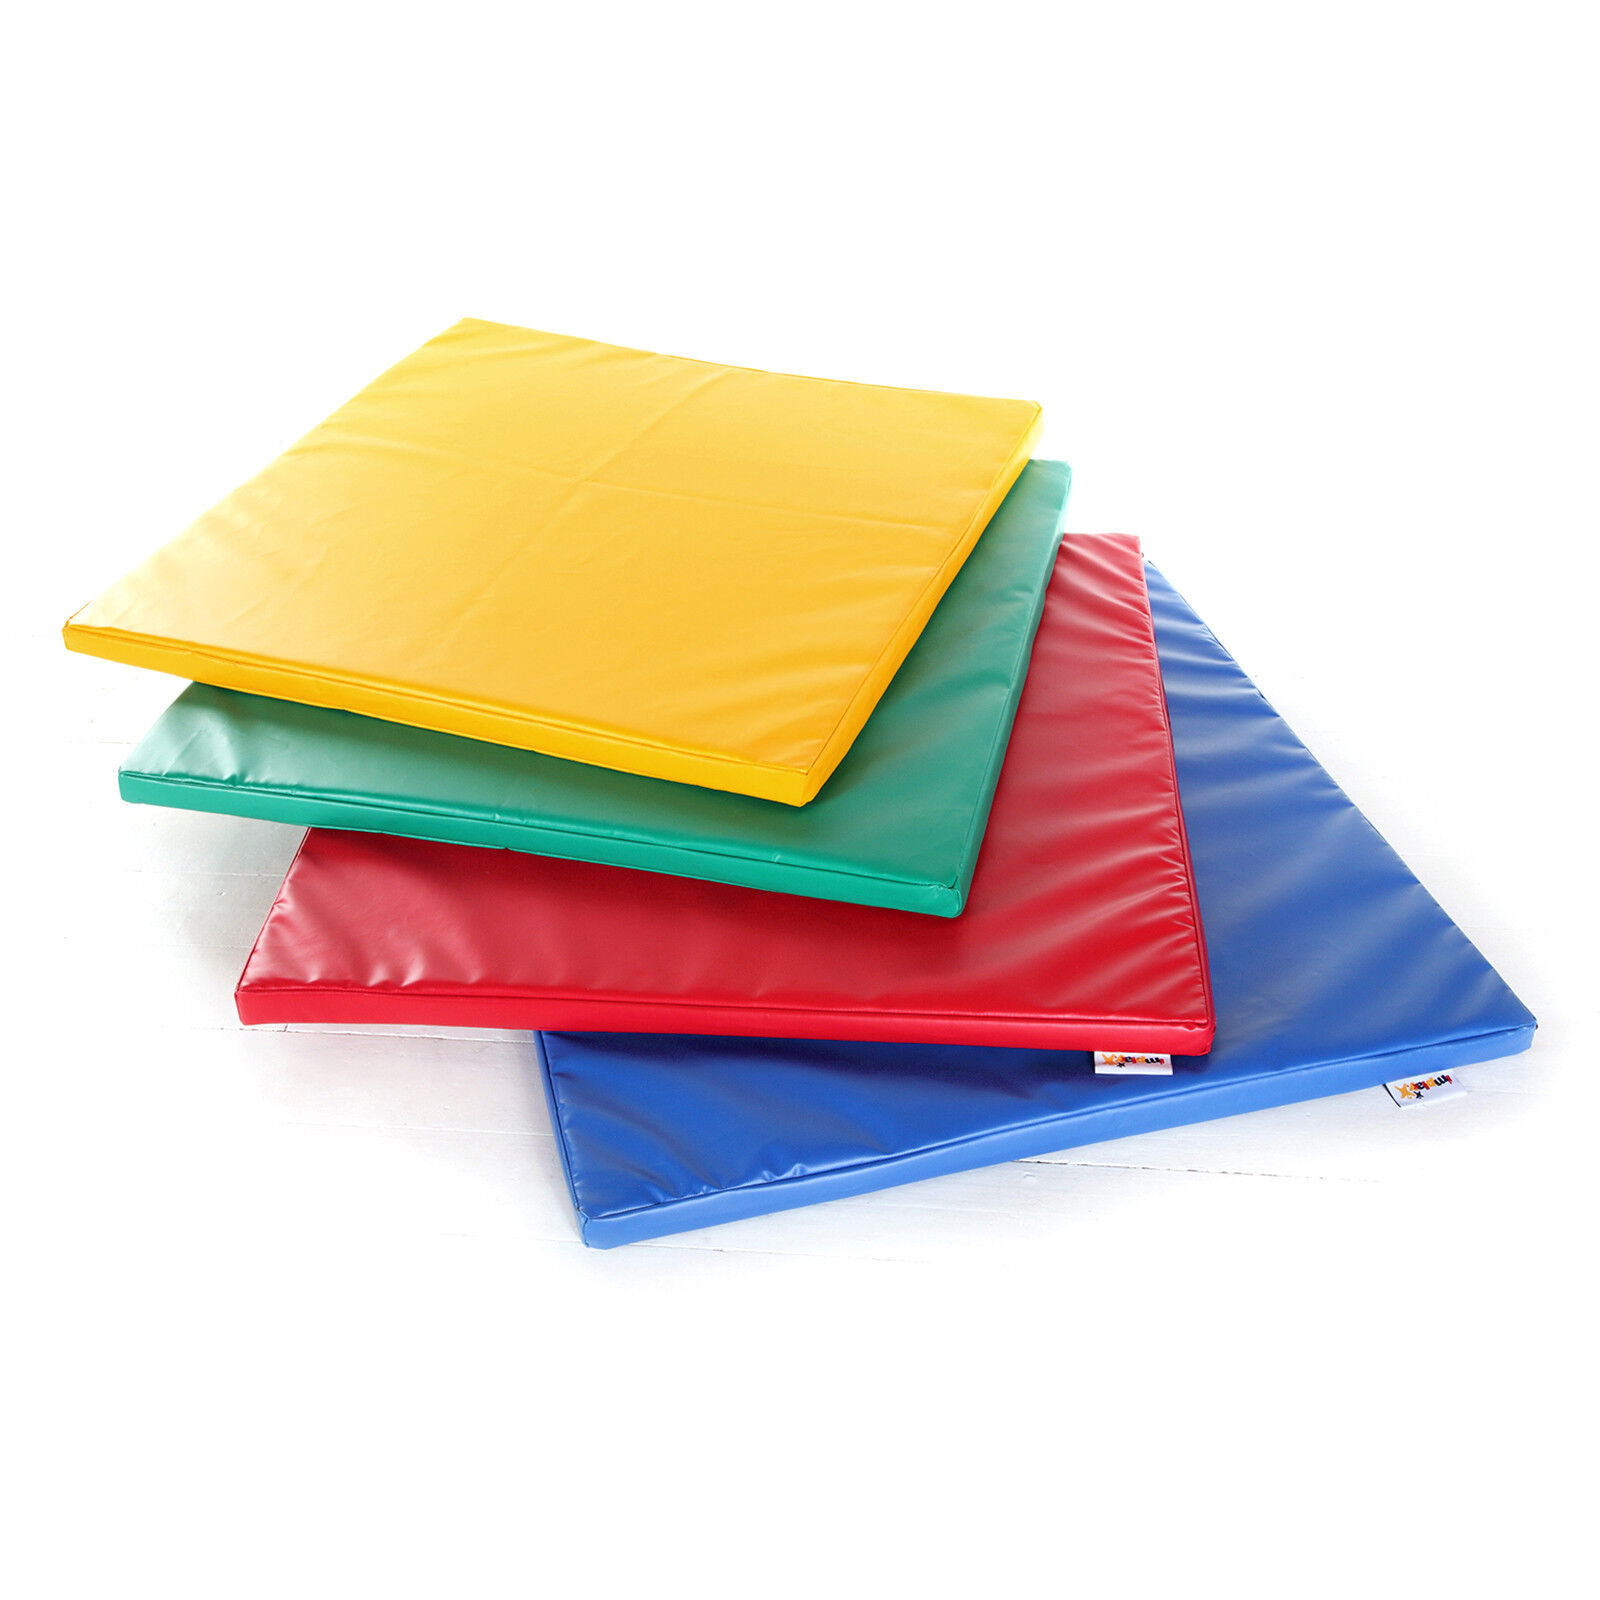 Implay Soft Play Bouncy Castle Safety   Crash Mats - All Sizes - Best Quality